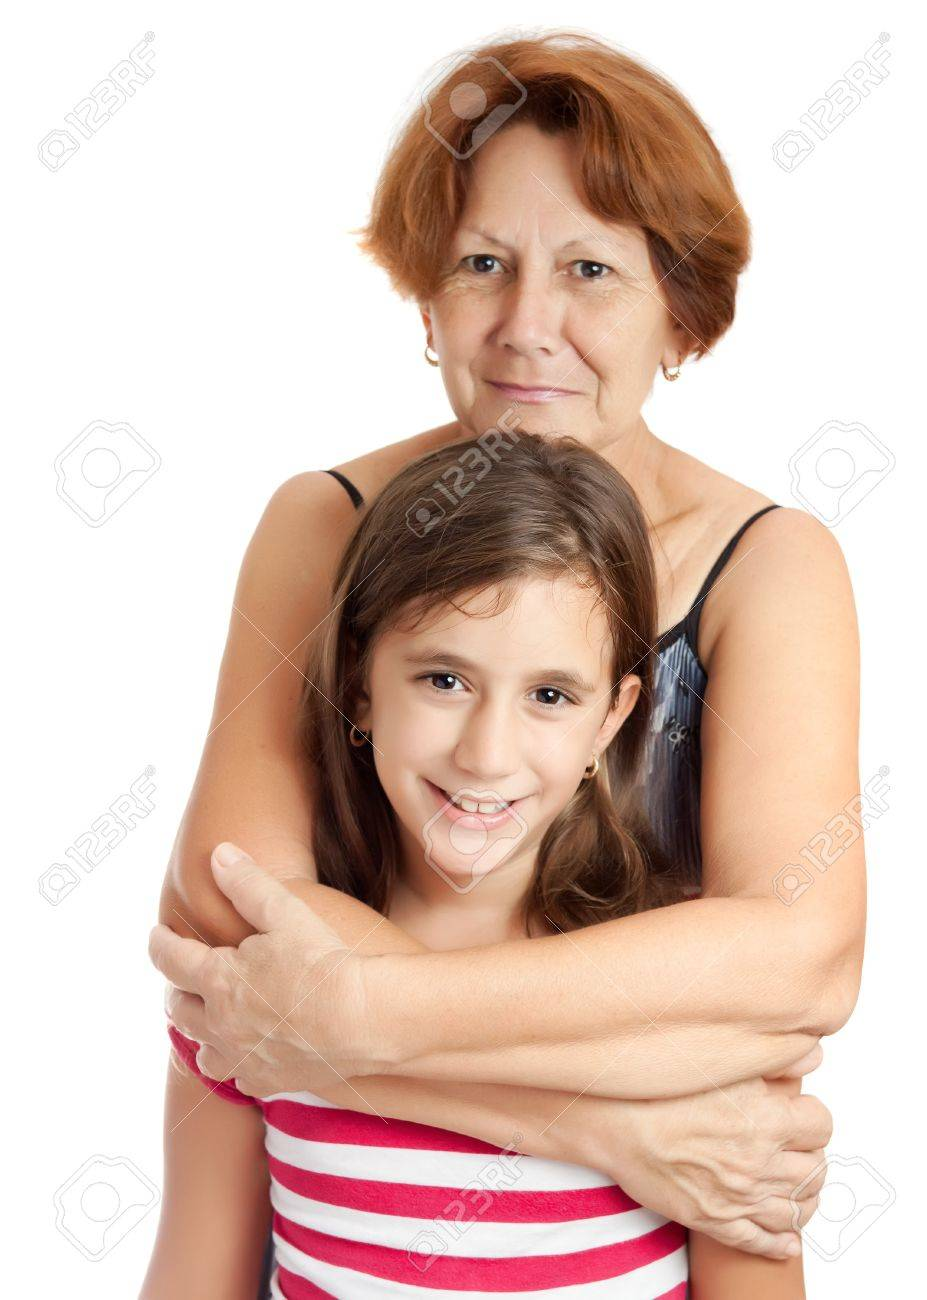 Latin grandmother hugging her granddaughter isolated on a white background Stock Photo - 10442654